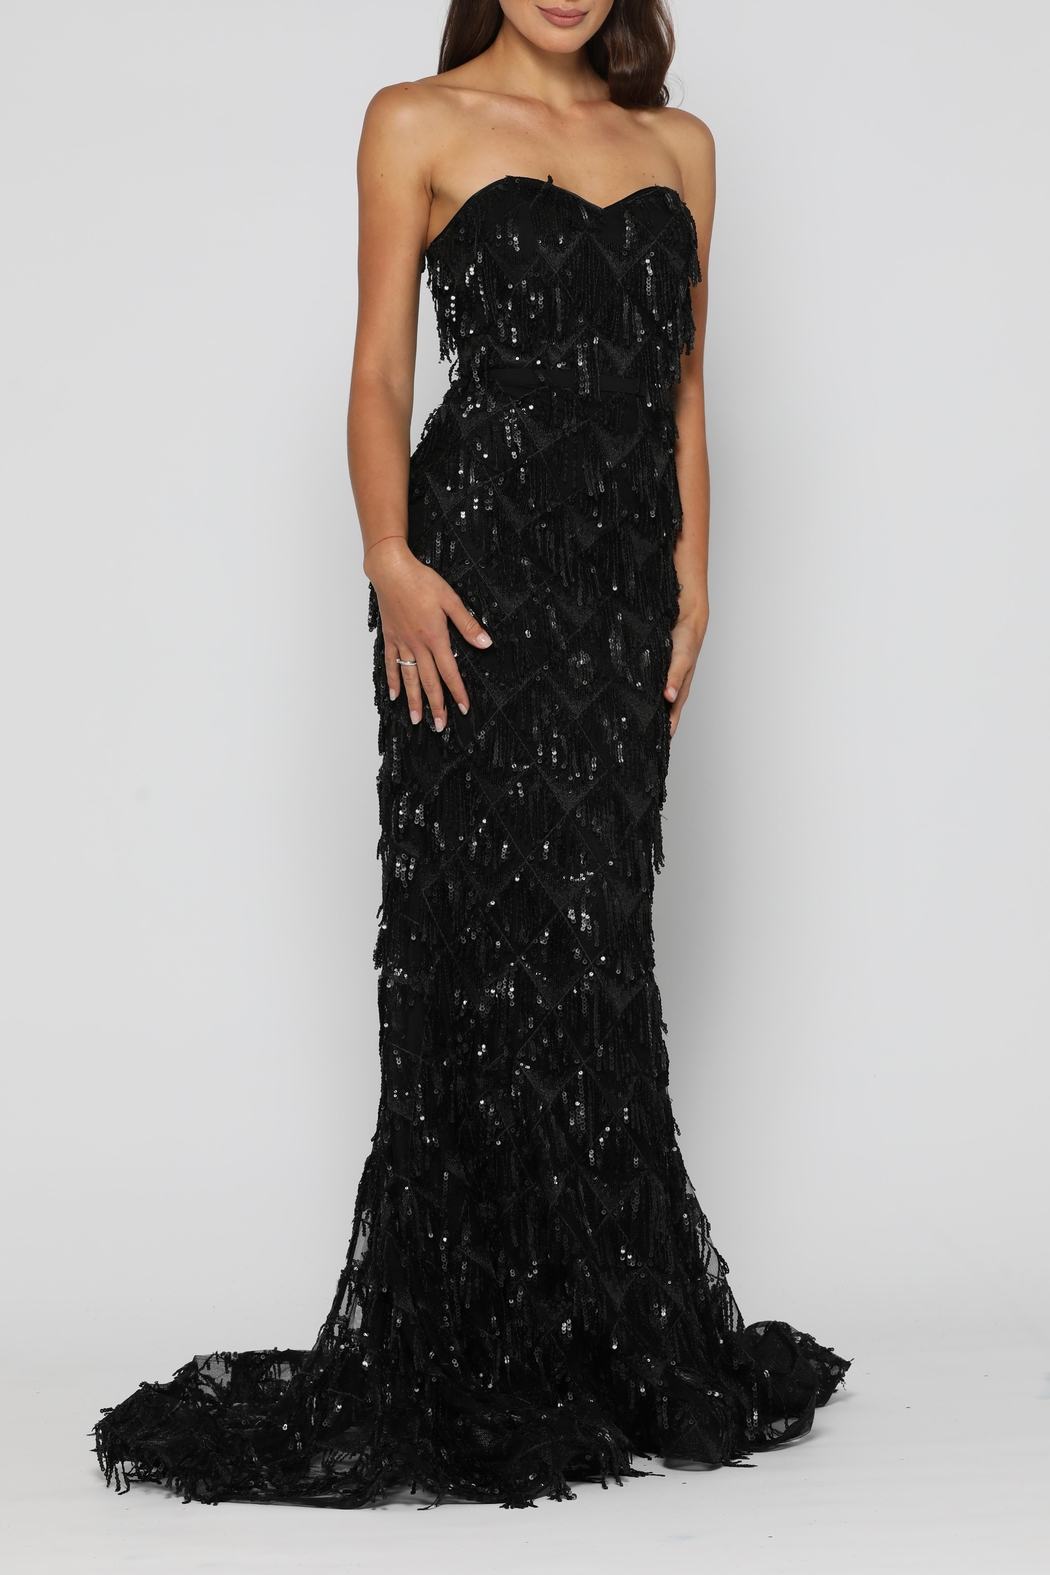 YSS the Label Dazzling Gown Black - Front Full Image